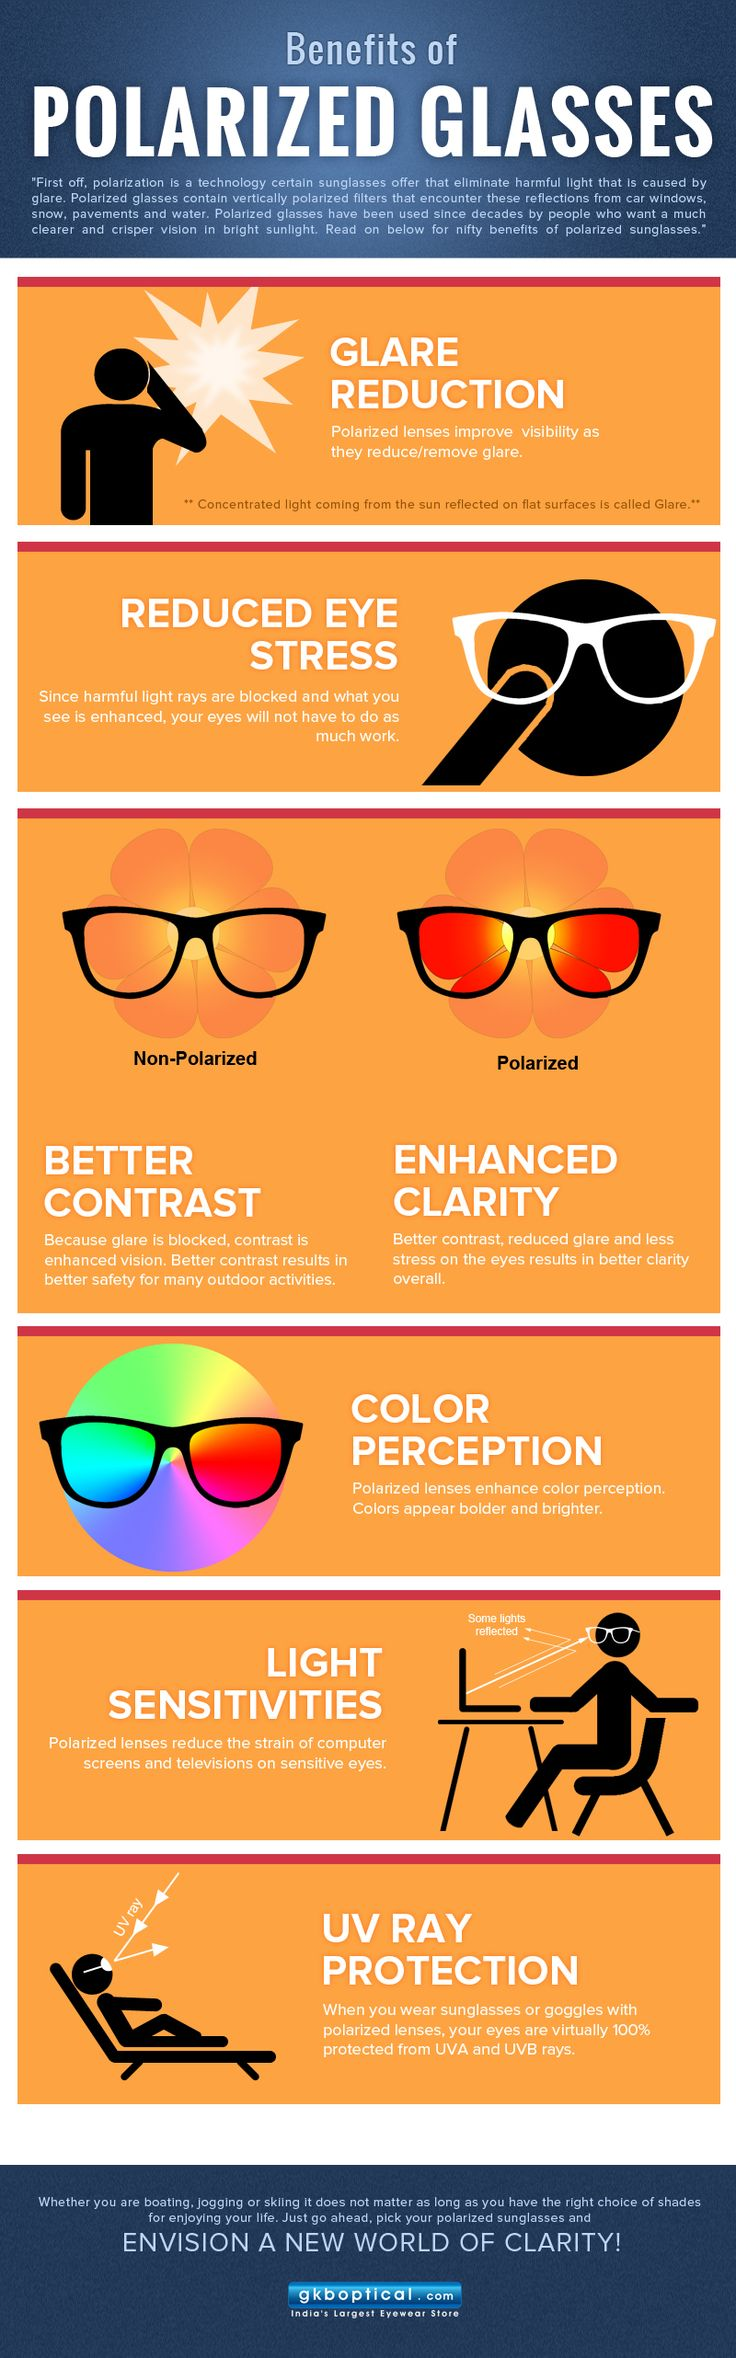 *Polarized sunglasses* have been popular for quite some time. It helps fishermen and boatsmen who require minimizing reflected glare from the water around them.Info graphics submit on gkboptical.com